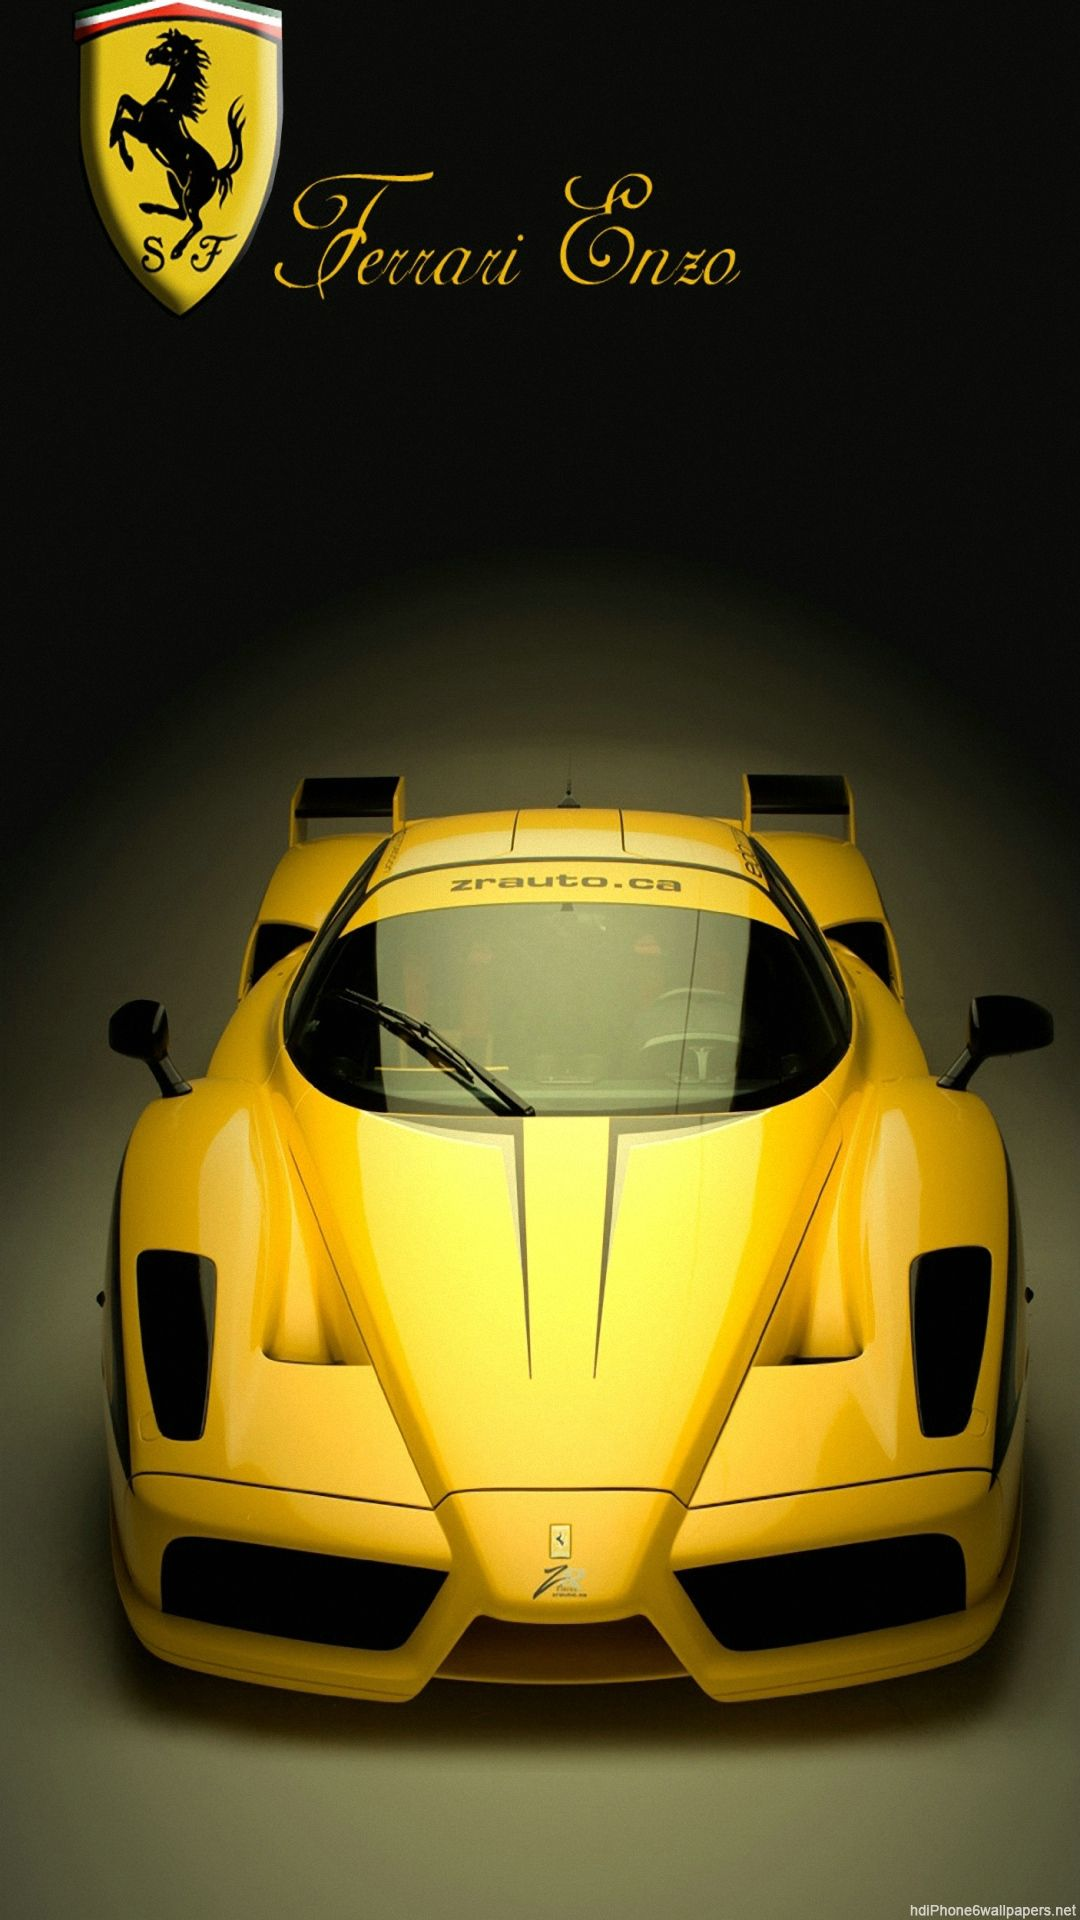 Beautiful HD 1080p Car Wallpaper Iphone 6 Wallpapers Hd 1040261nj 1080x1920 Wall Picture